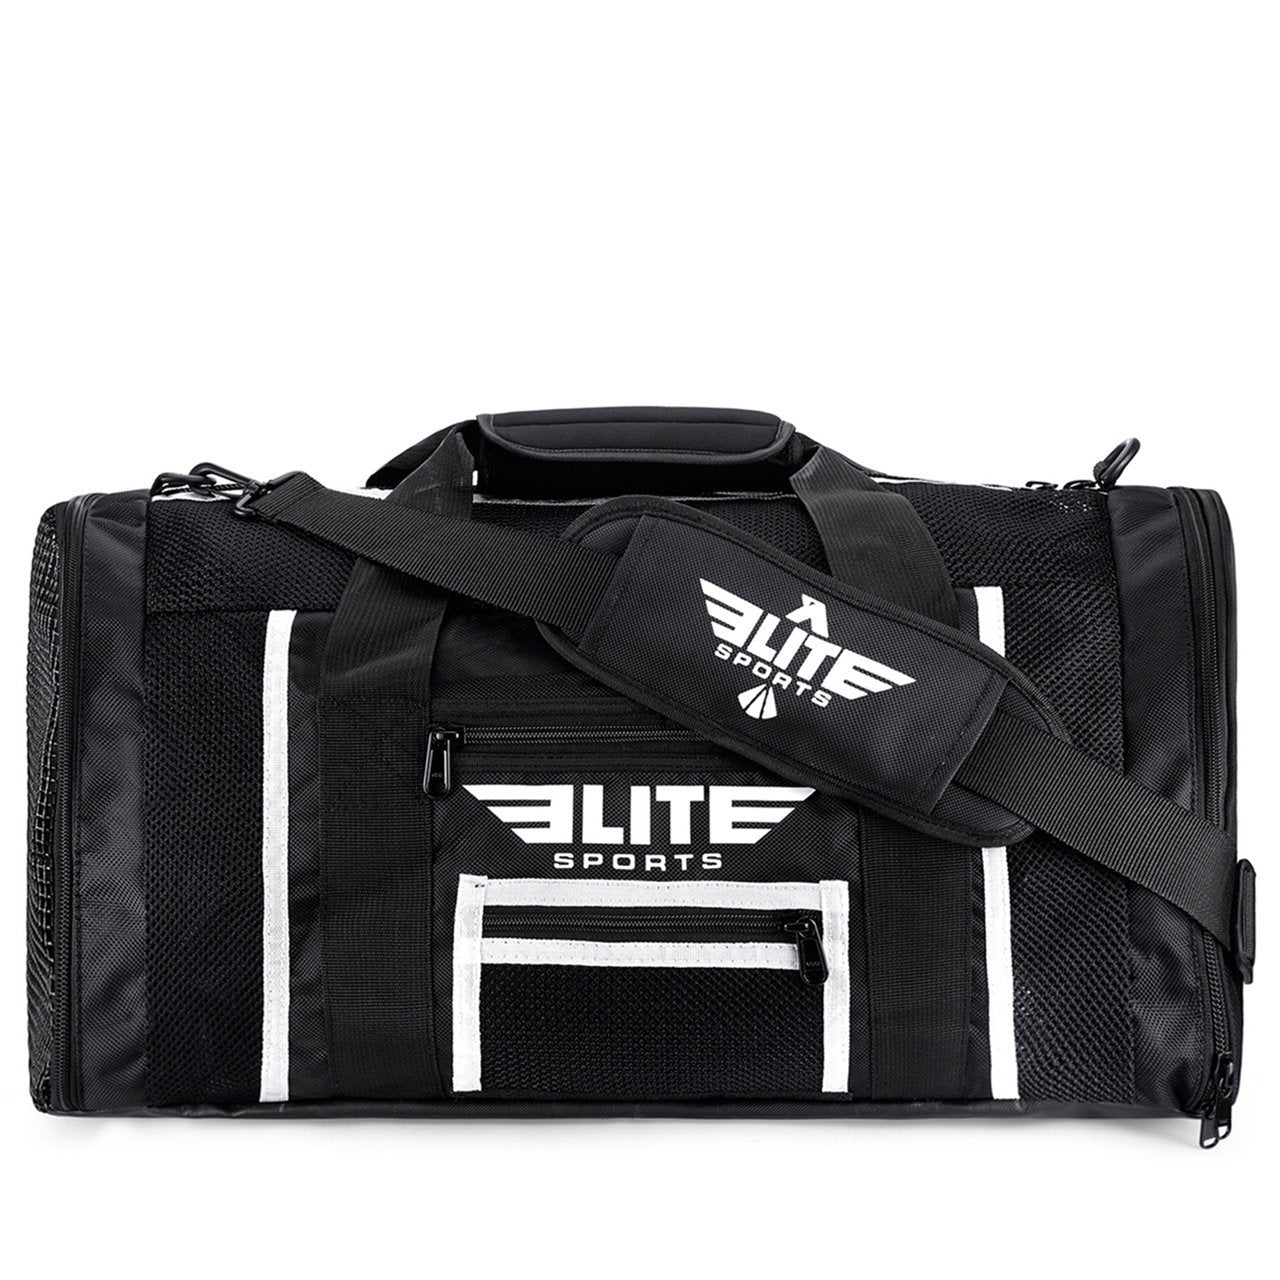 Elite Sports Duffel Bag Medium Version - Black